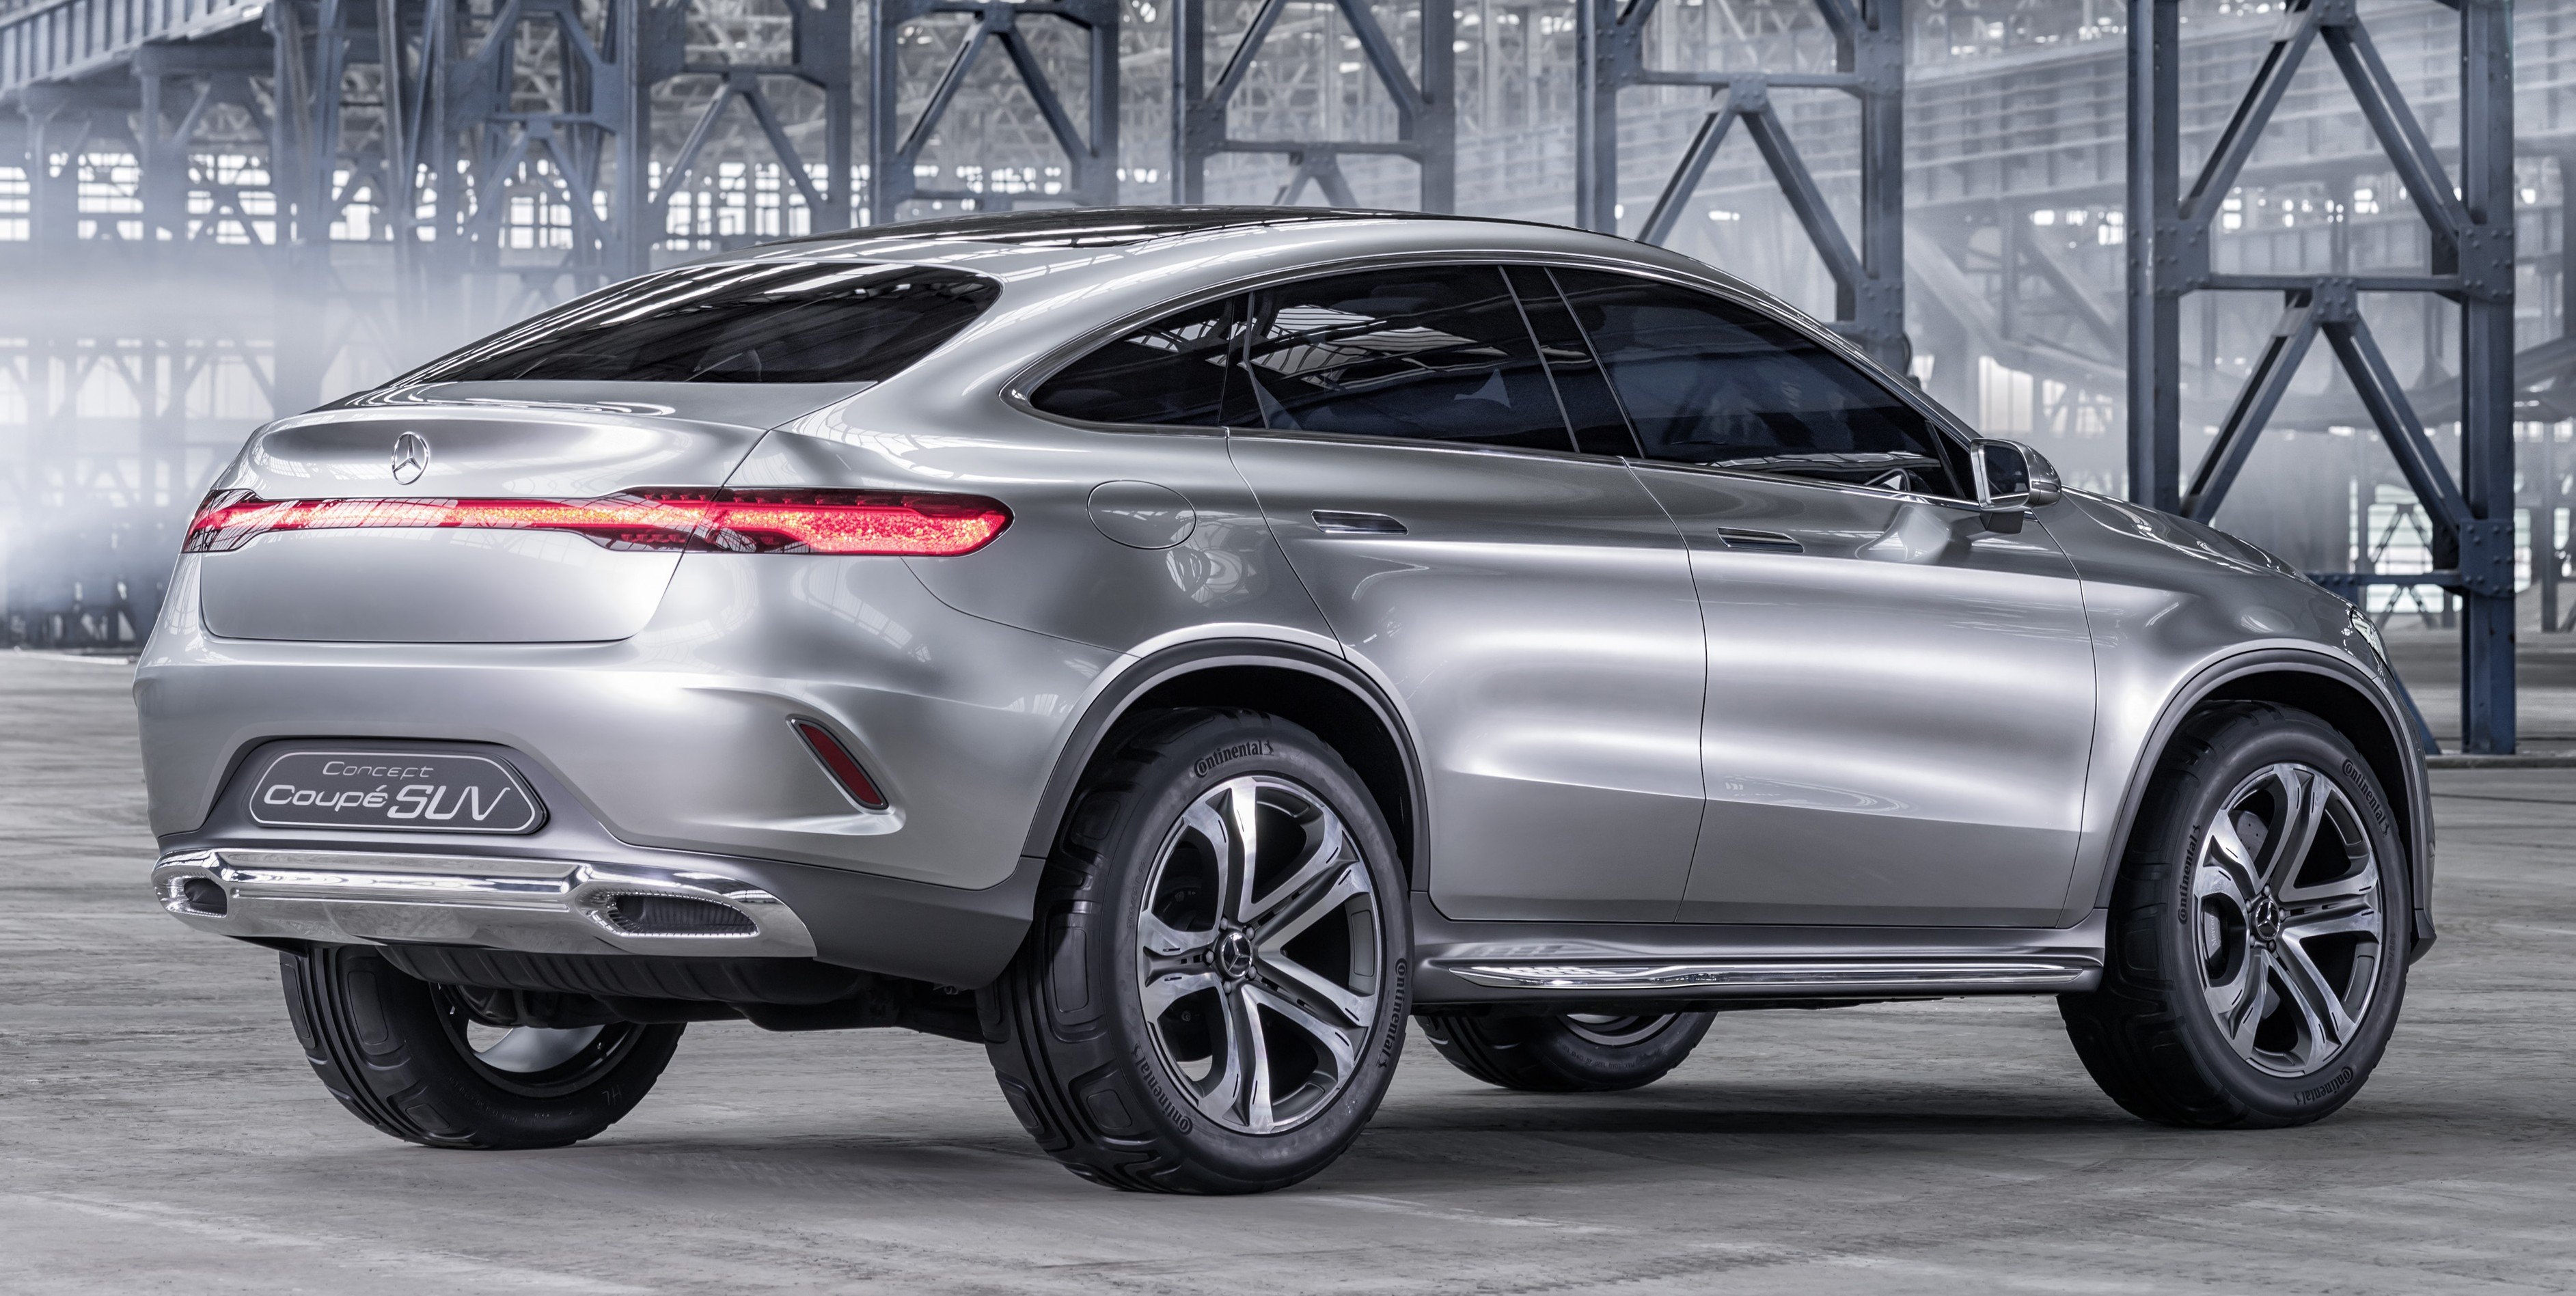 Mercedes benz coupe suv concept previews x6 rival image 242569 for Mercedes benz suv models